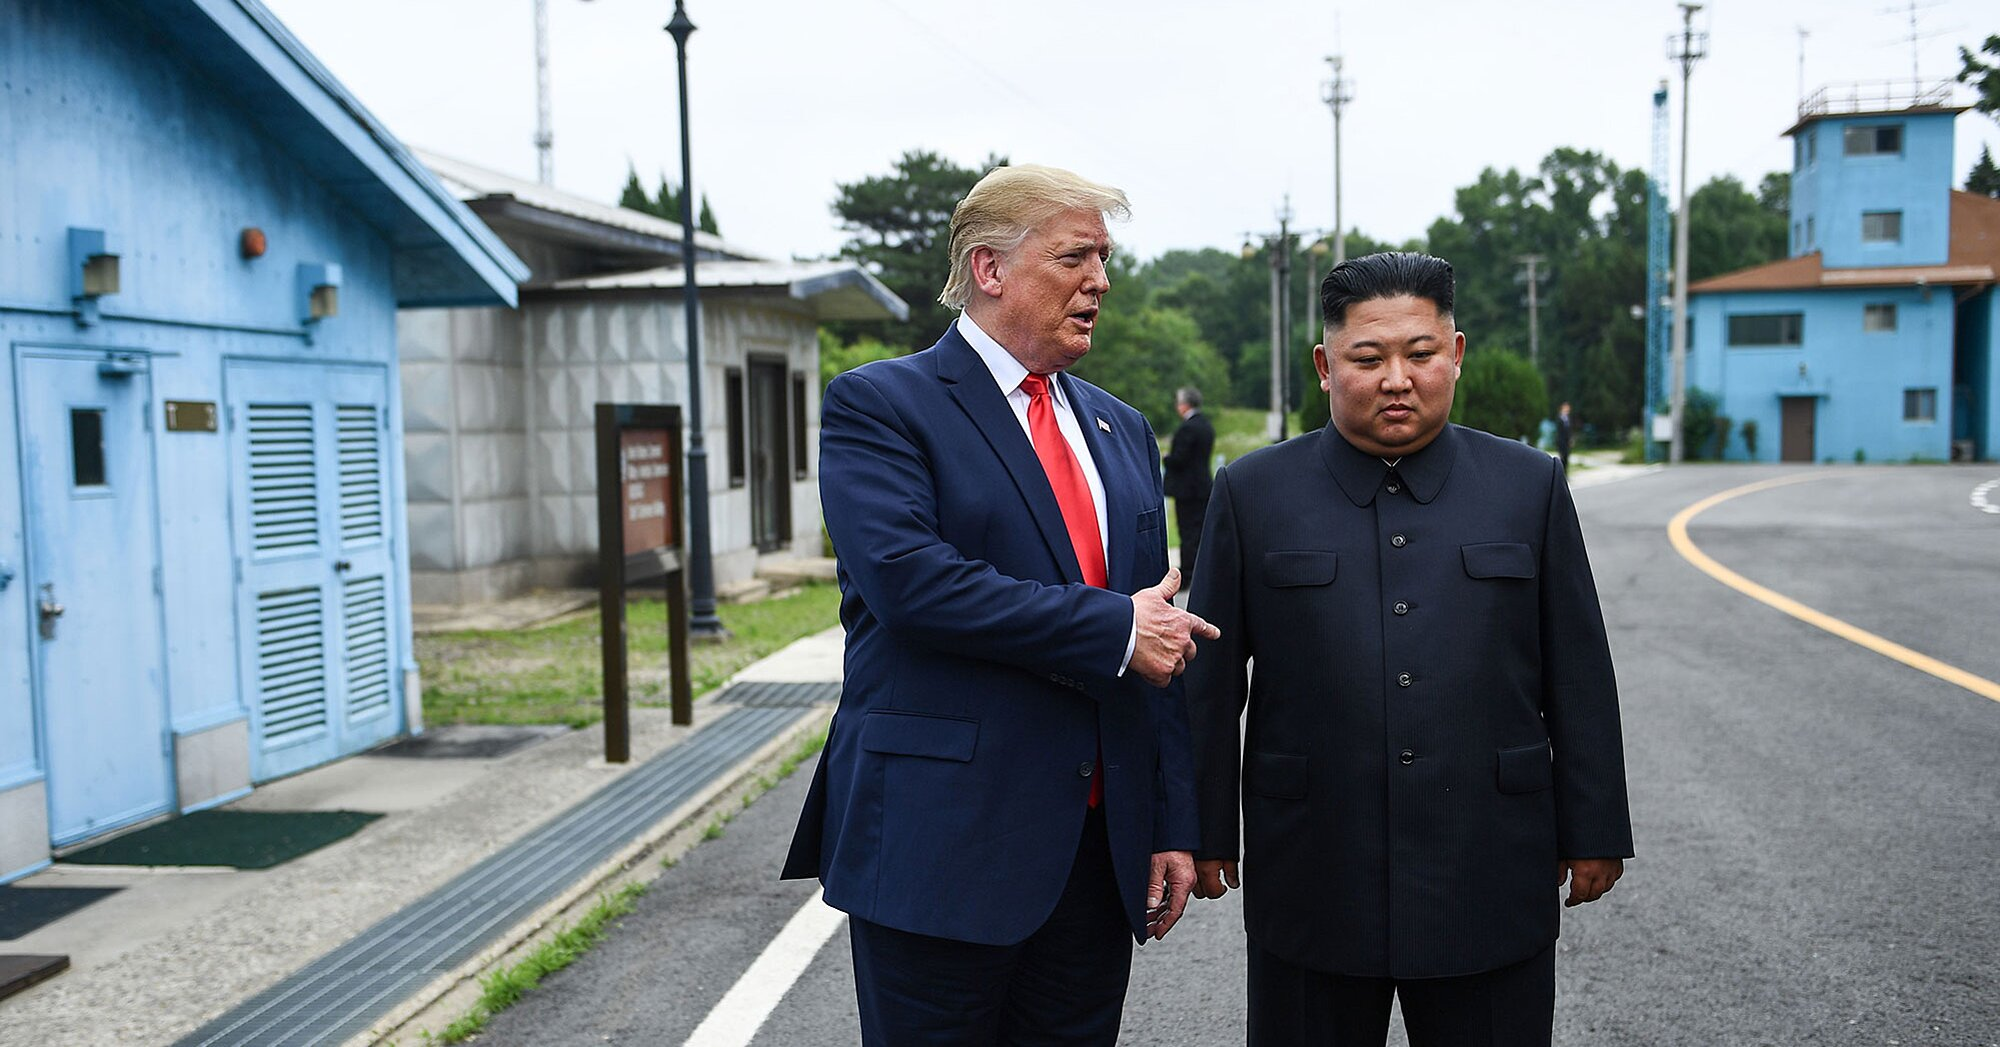 Donald Trump, Kim Jong Un 'Love Letters' Revealed | PEOPLE.com